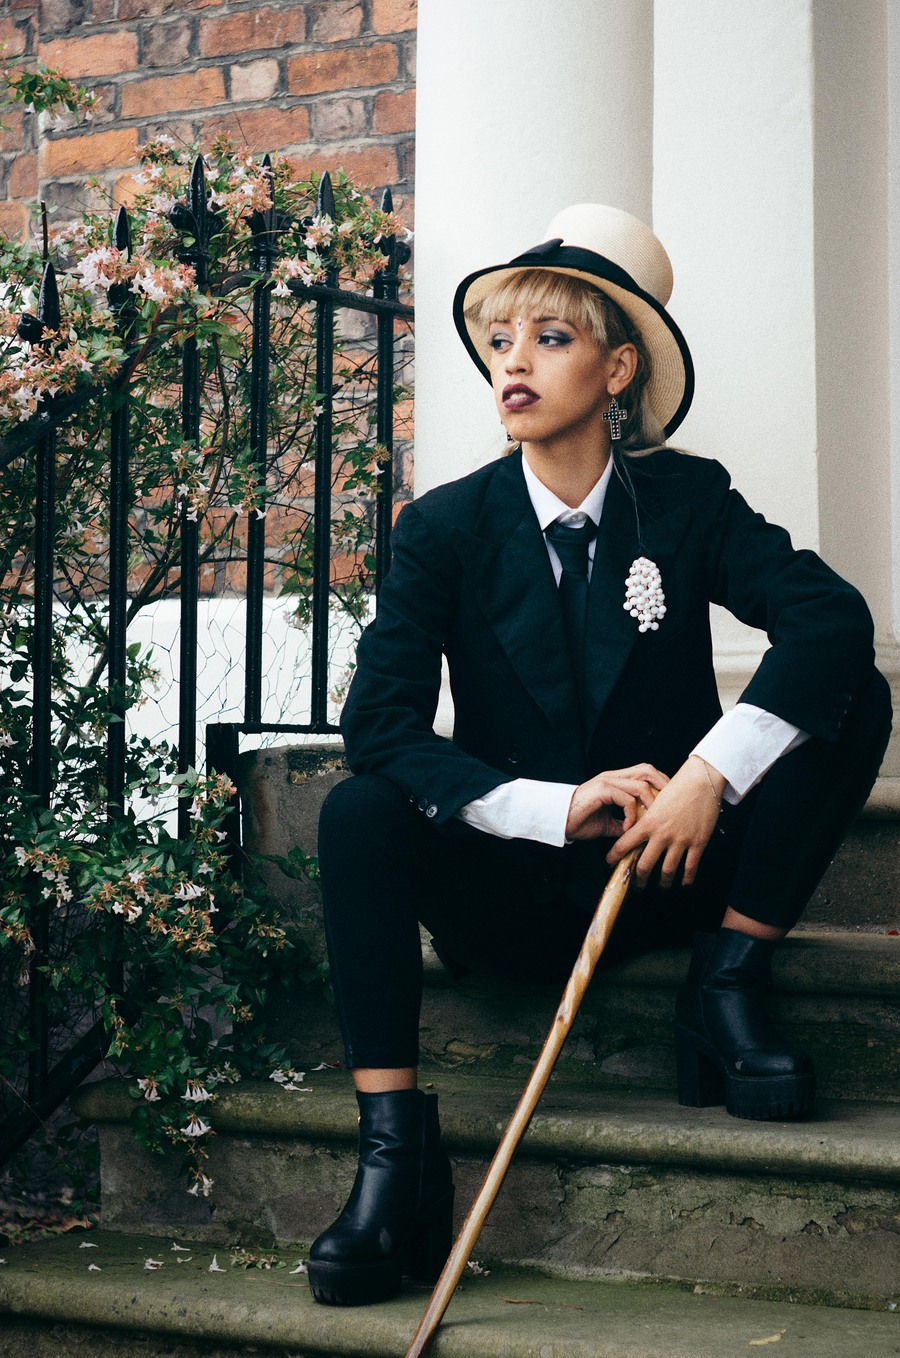 Hat and Stick / Photography by Kyle May, Assisted by CharlotteJayne / Uploaded 12th September 2016 @ 12:42 AM